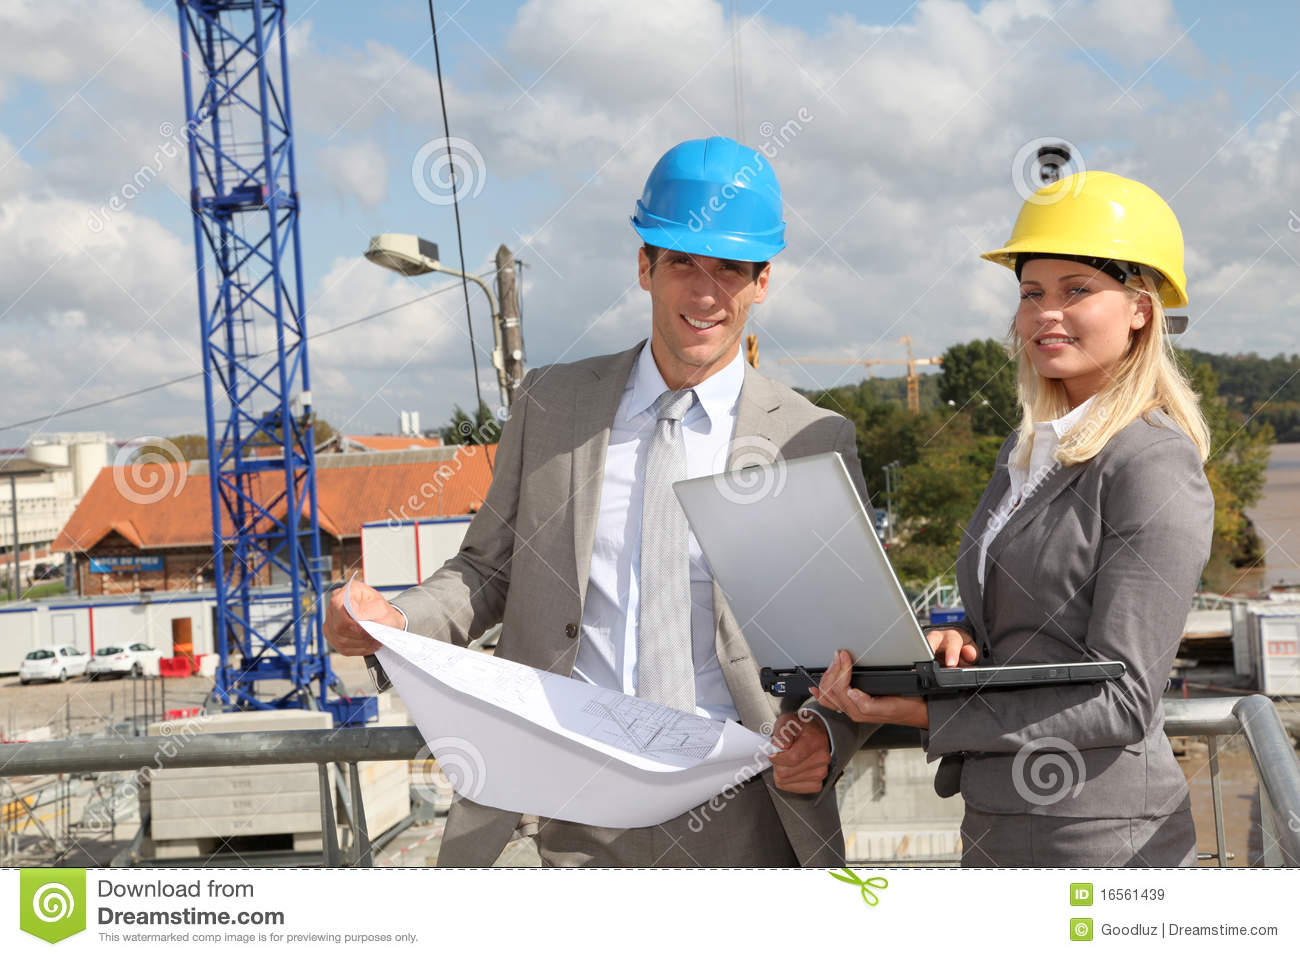 Architects At Work Royalty Free Stock Images - Image: 16561439